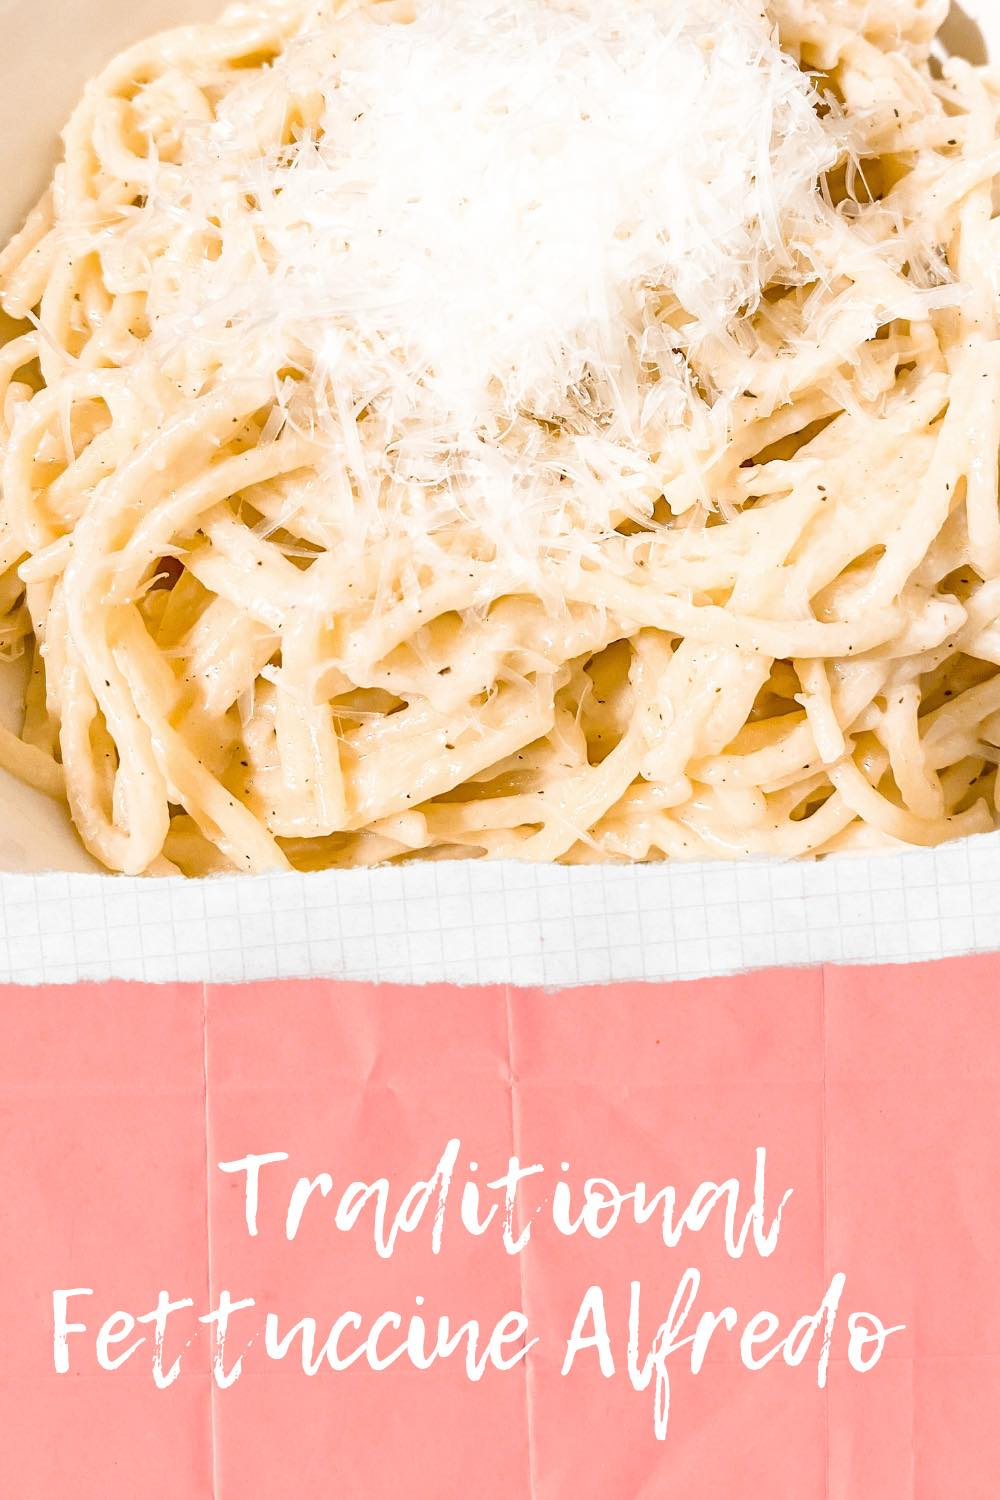 How to Make Traditional Fettuccine Alfredo